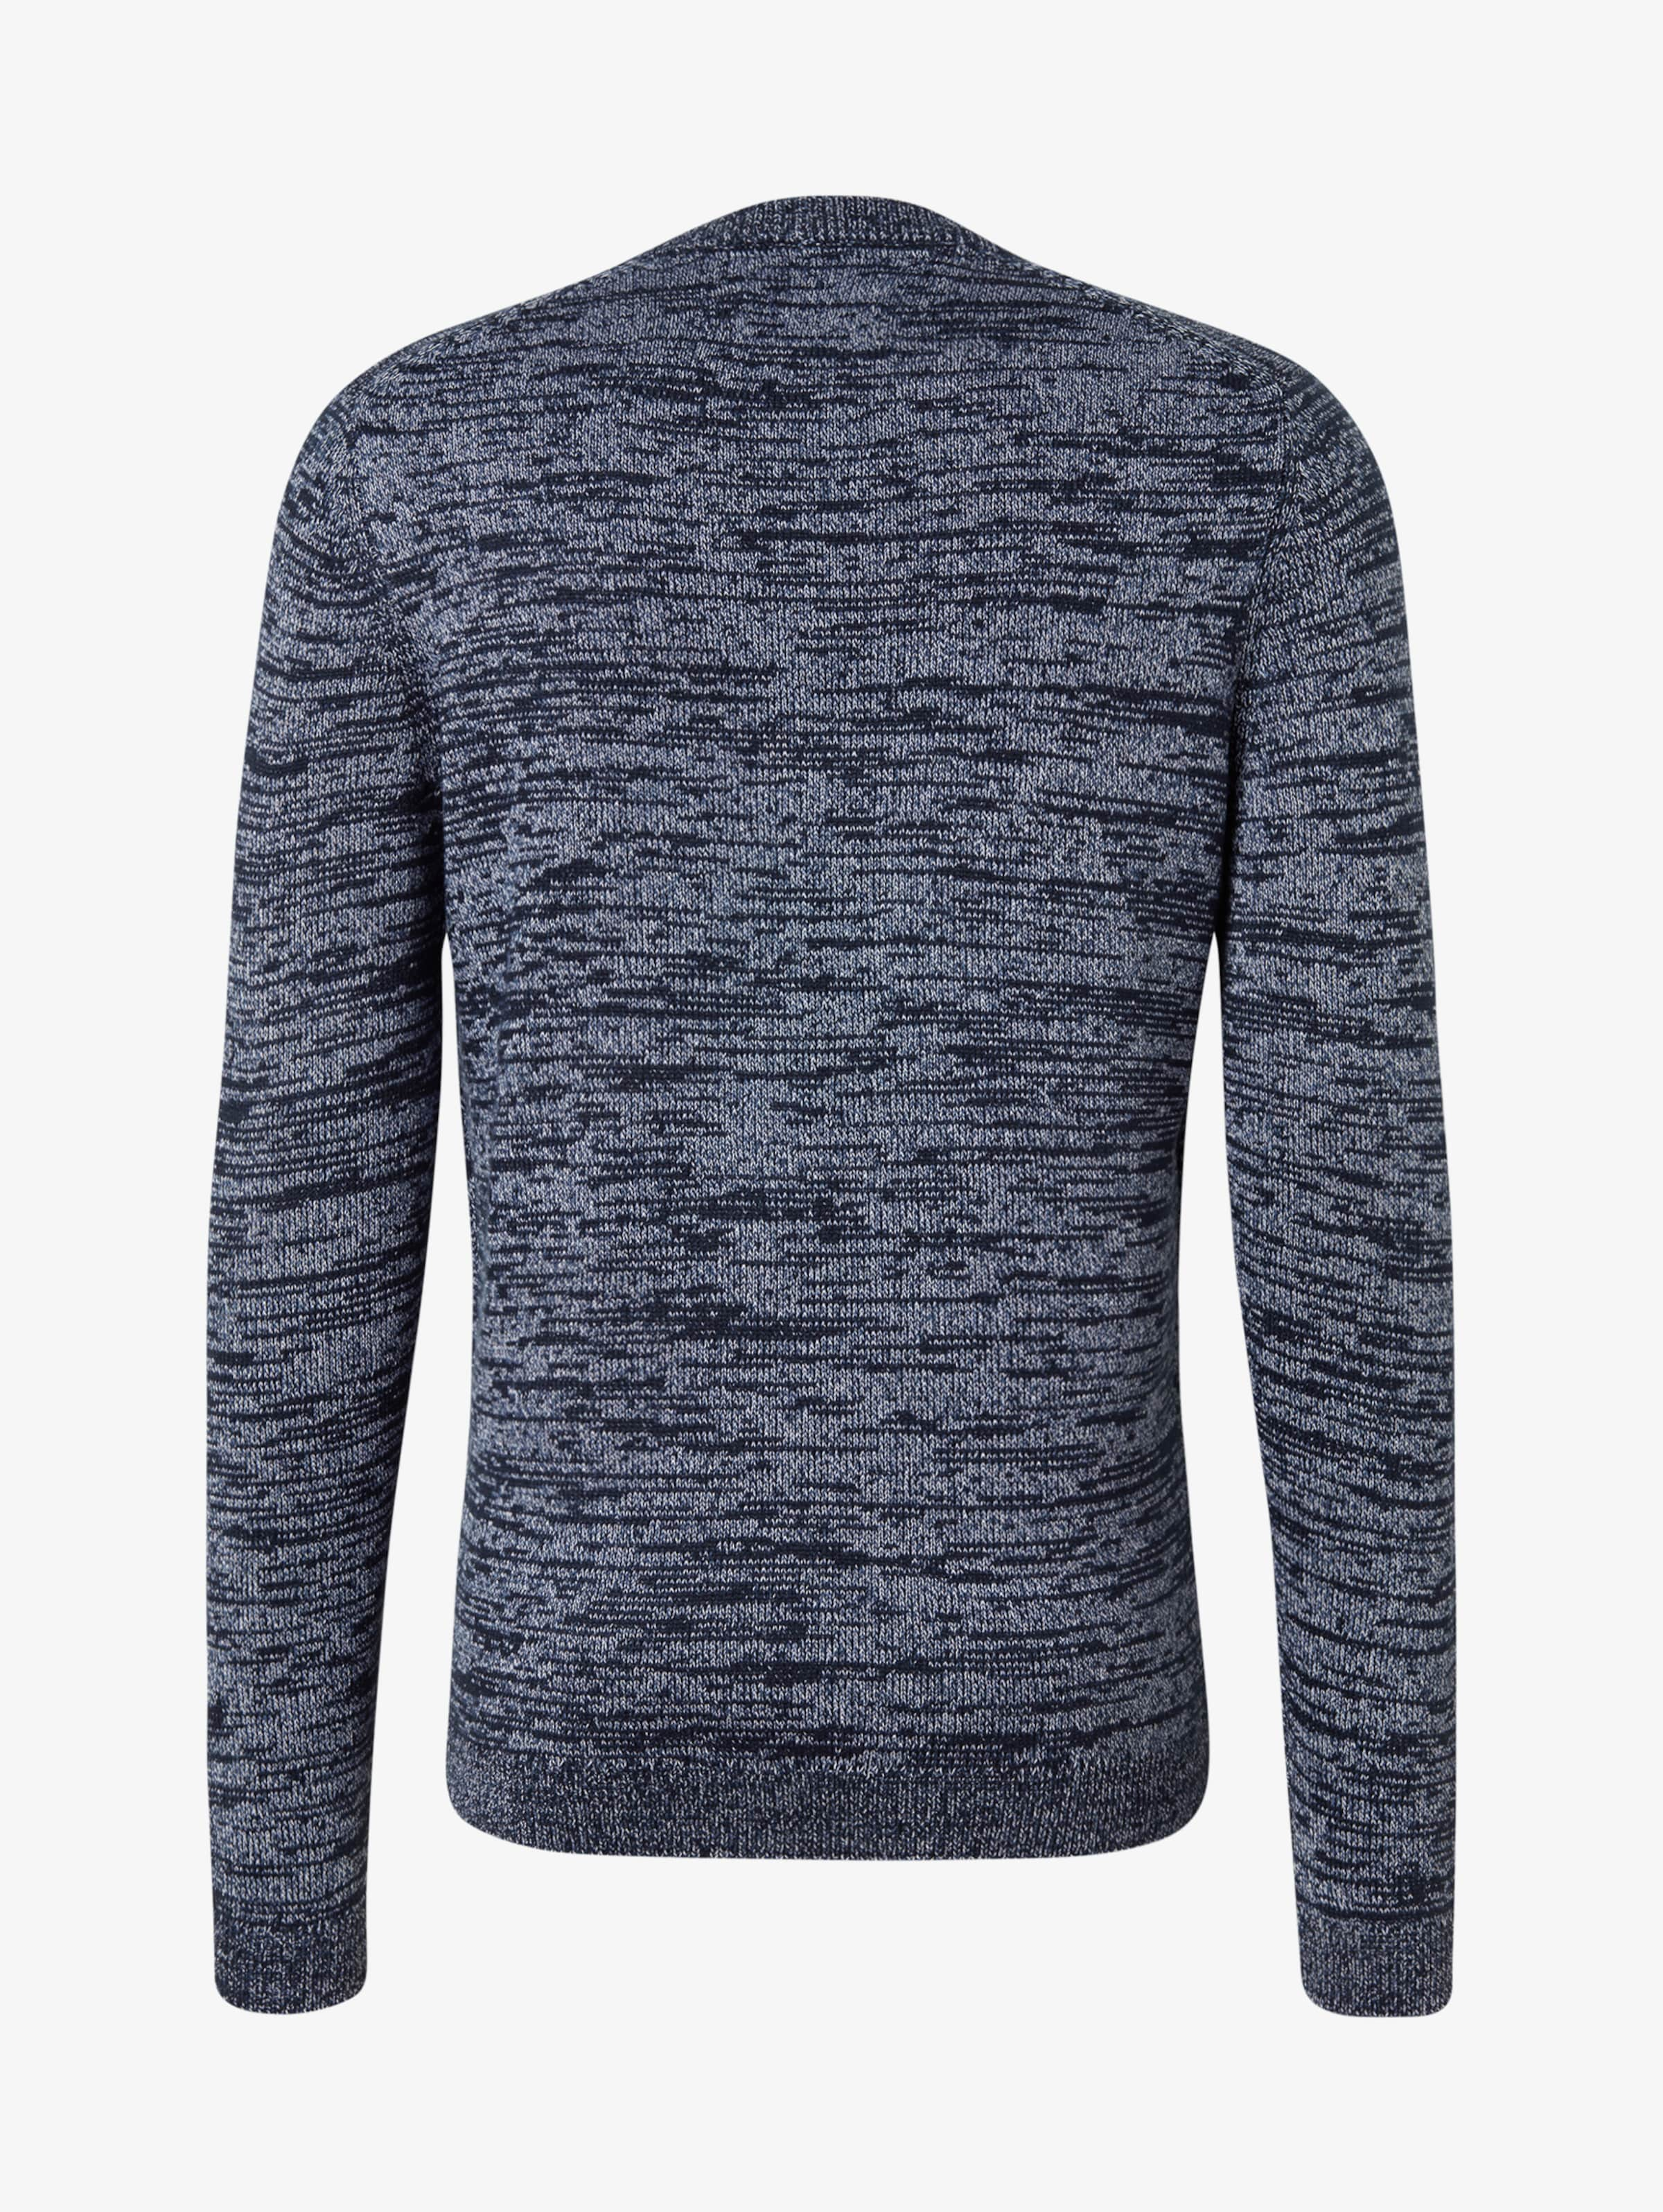 Tom Taubenblau In Pullover Denim Tailor jARq354cL